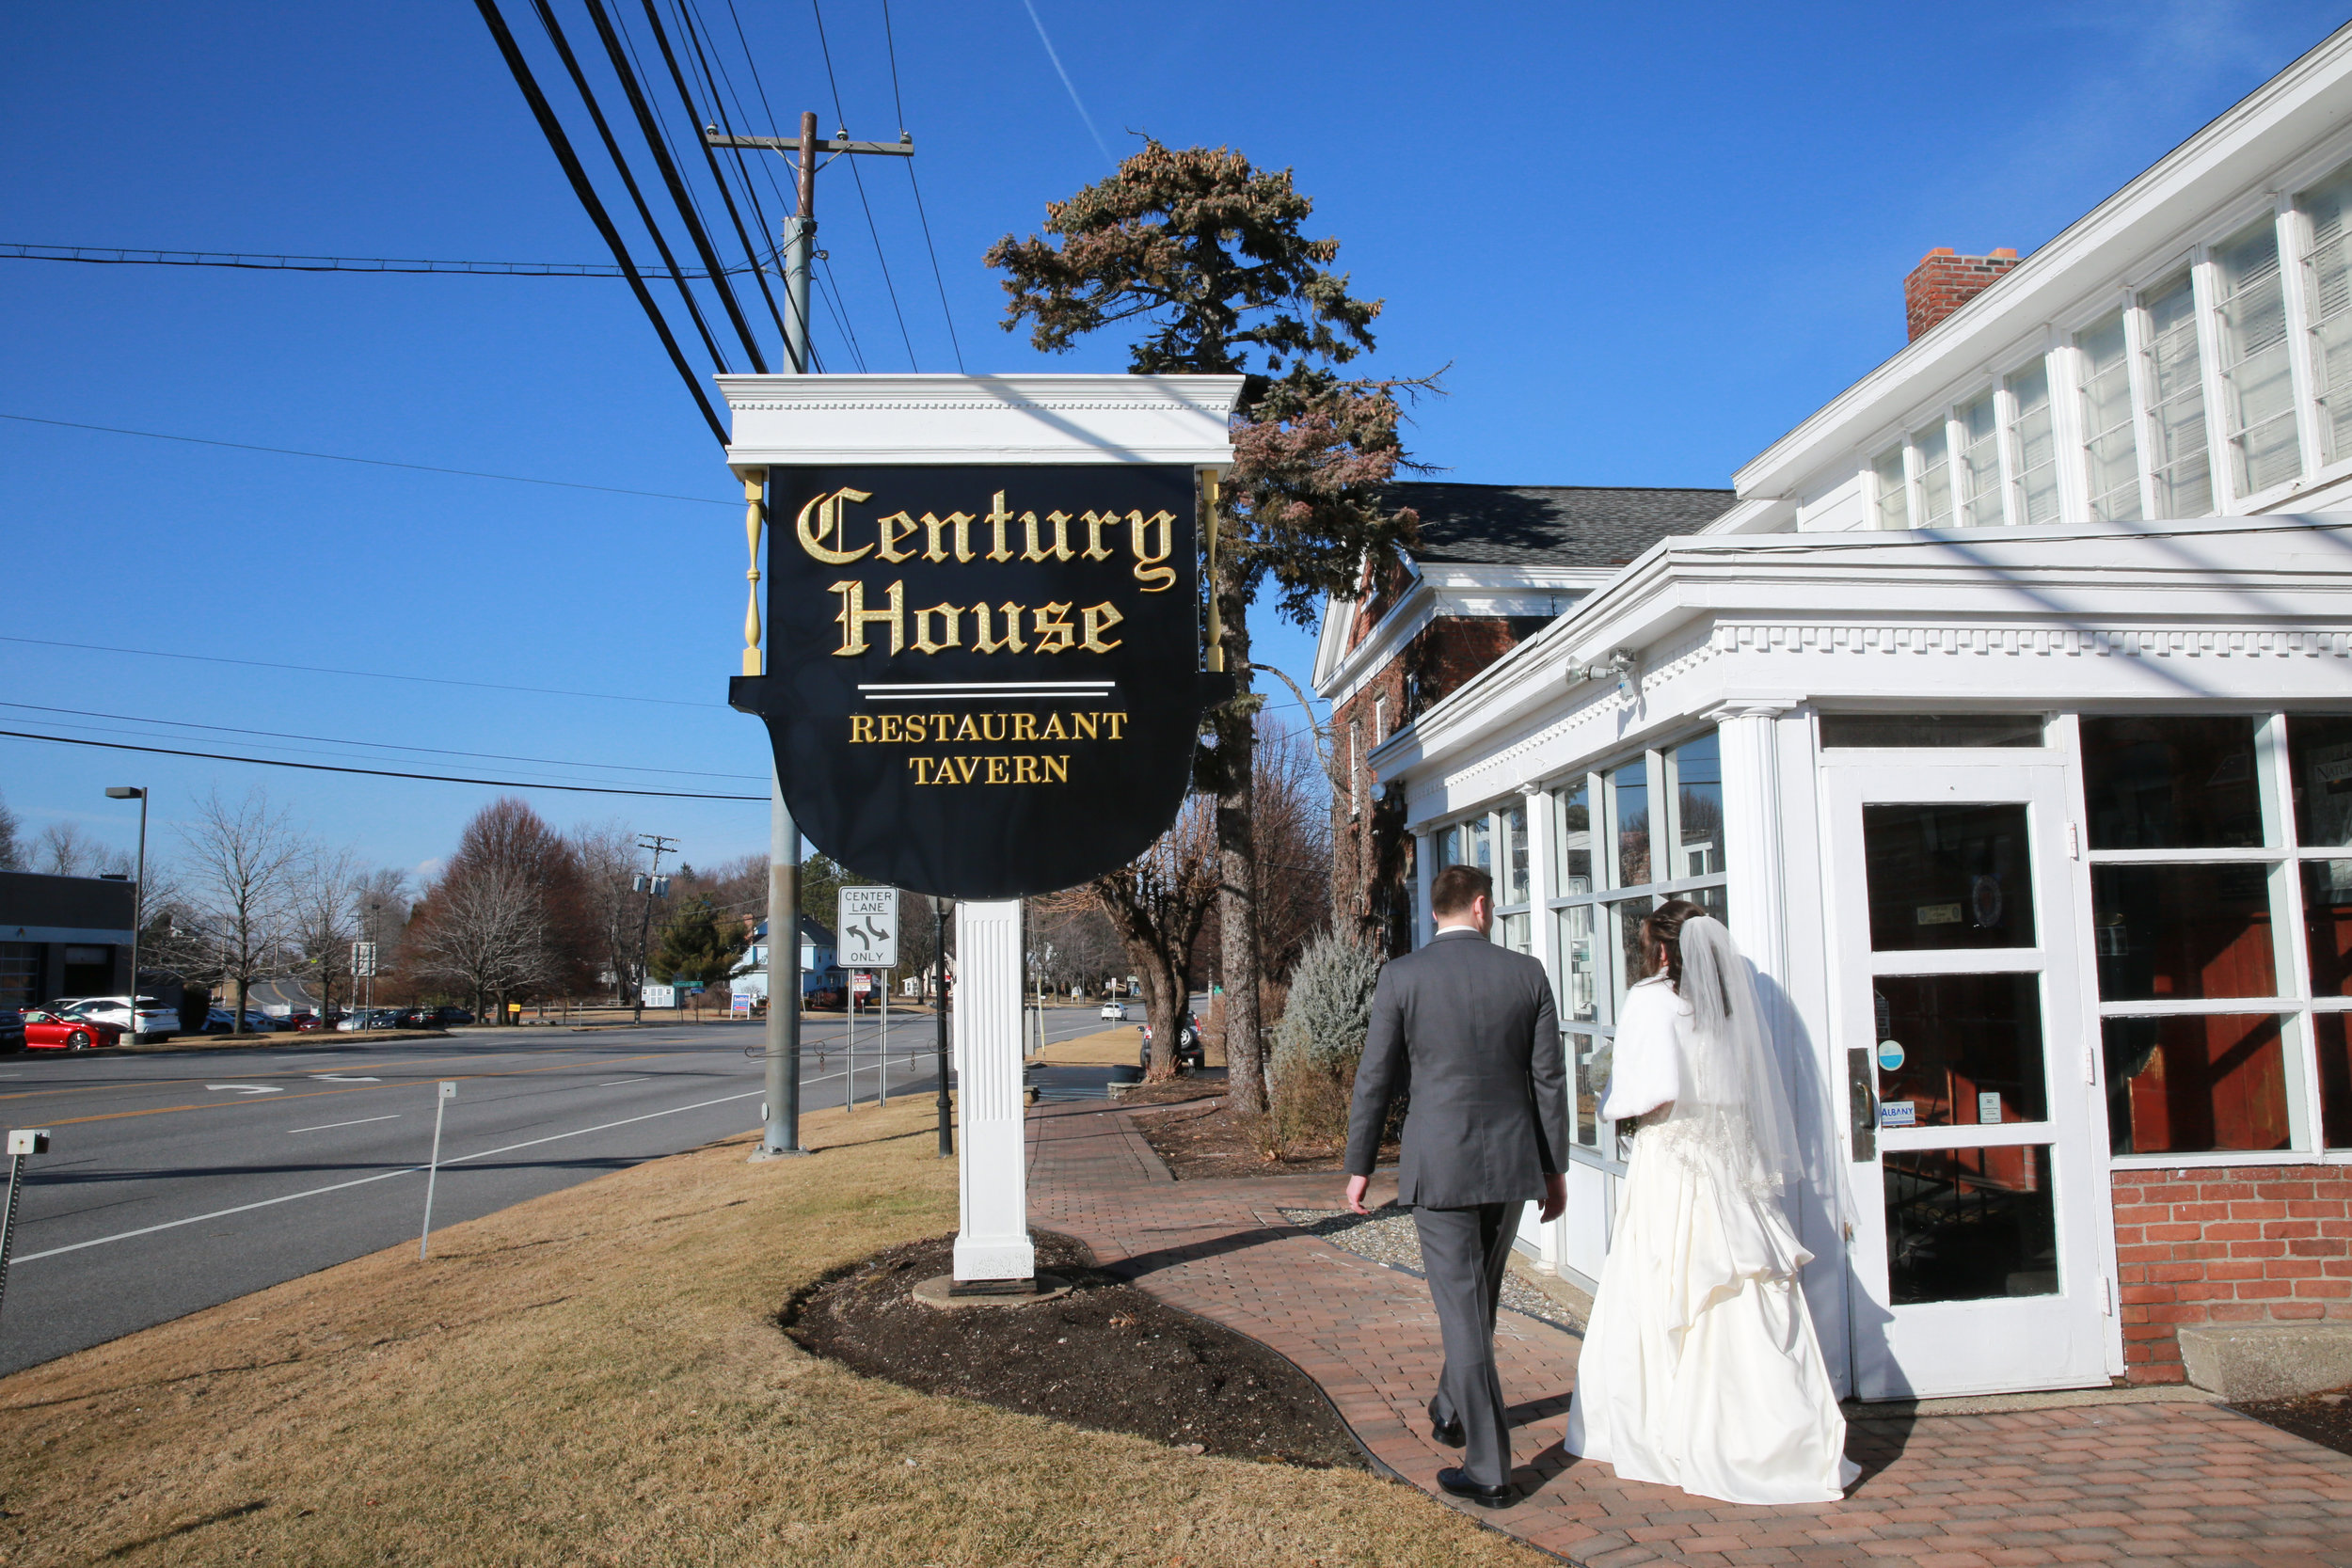 The Century House in Latham by Aperture Photography